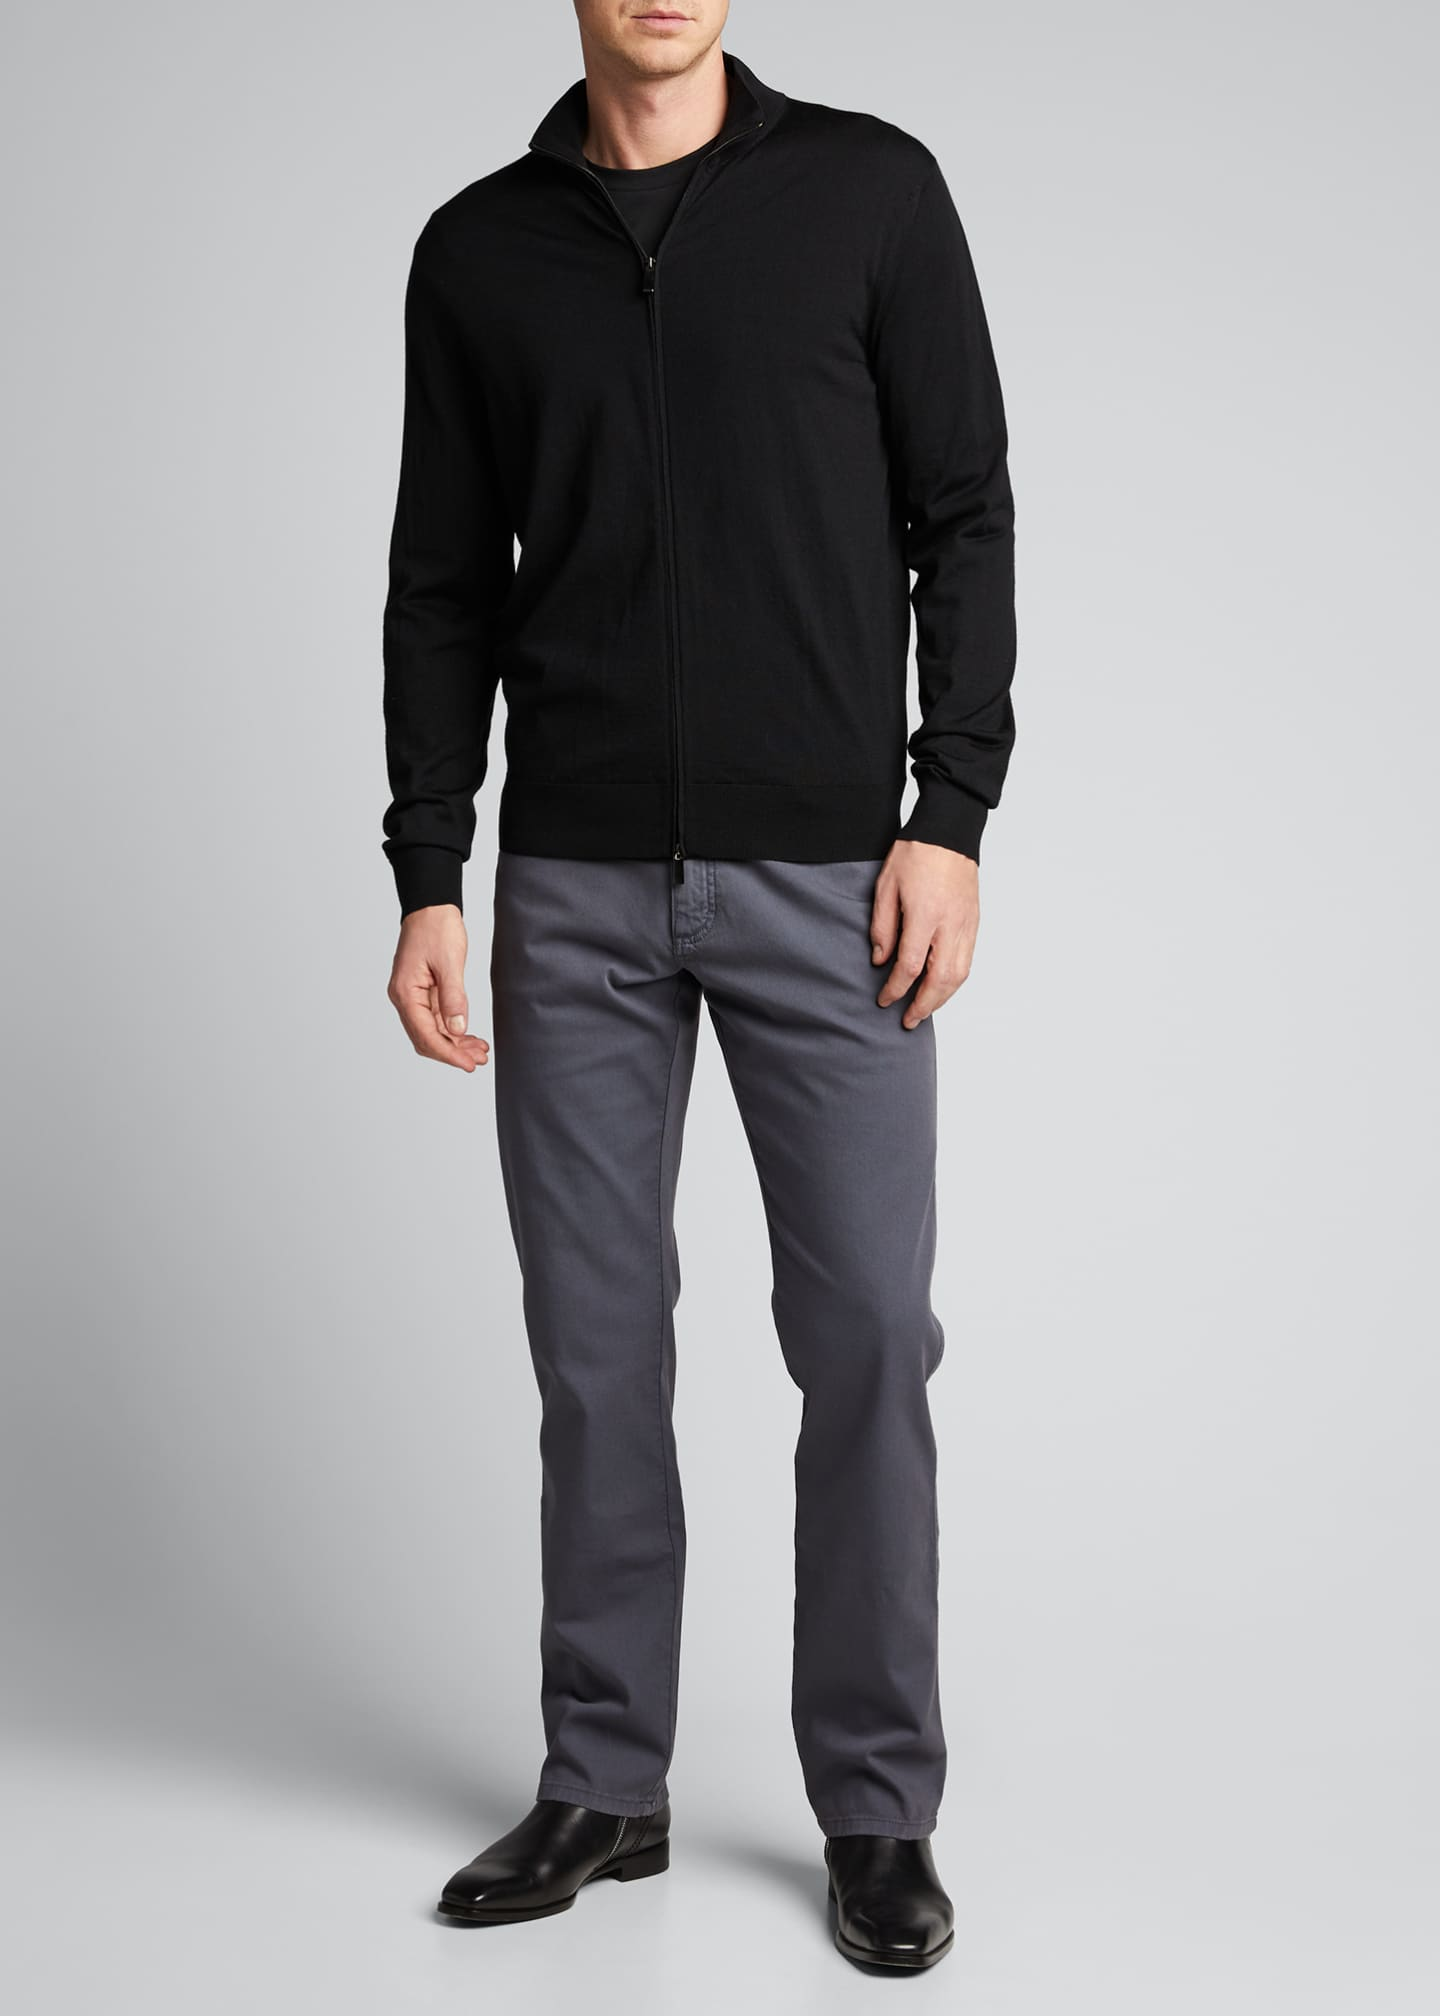 Image 1 of 5: Men's Solid Wool Zip-Front Sweater